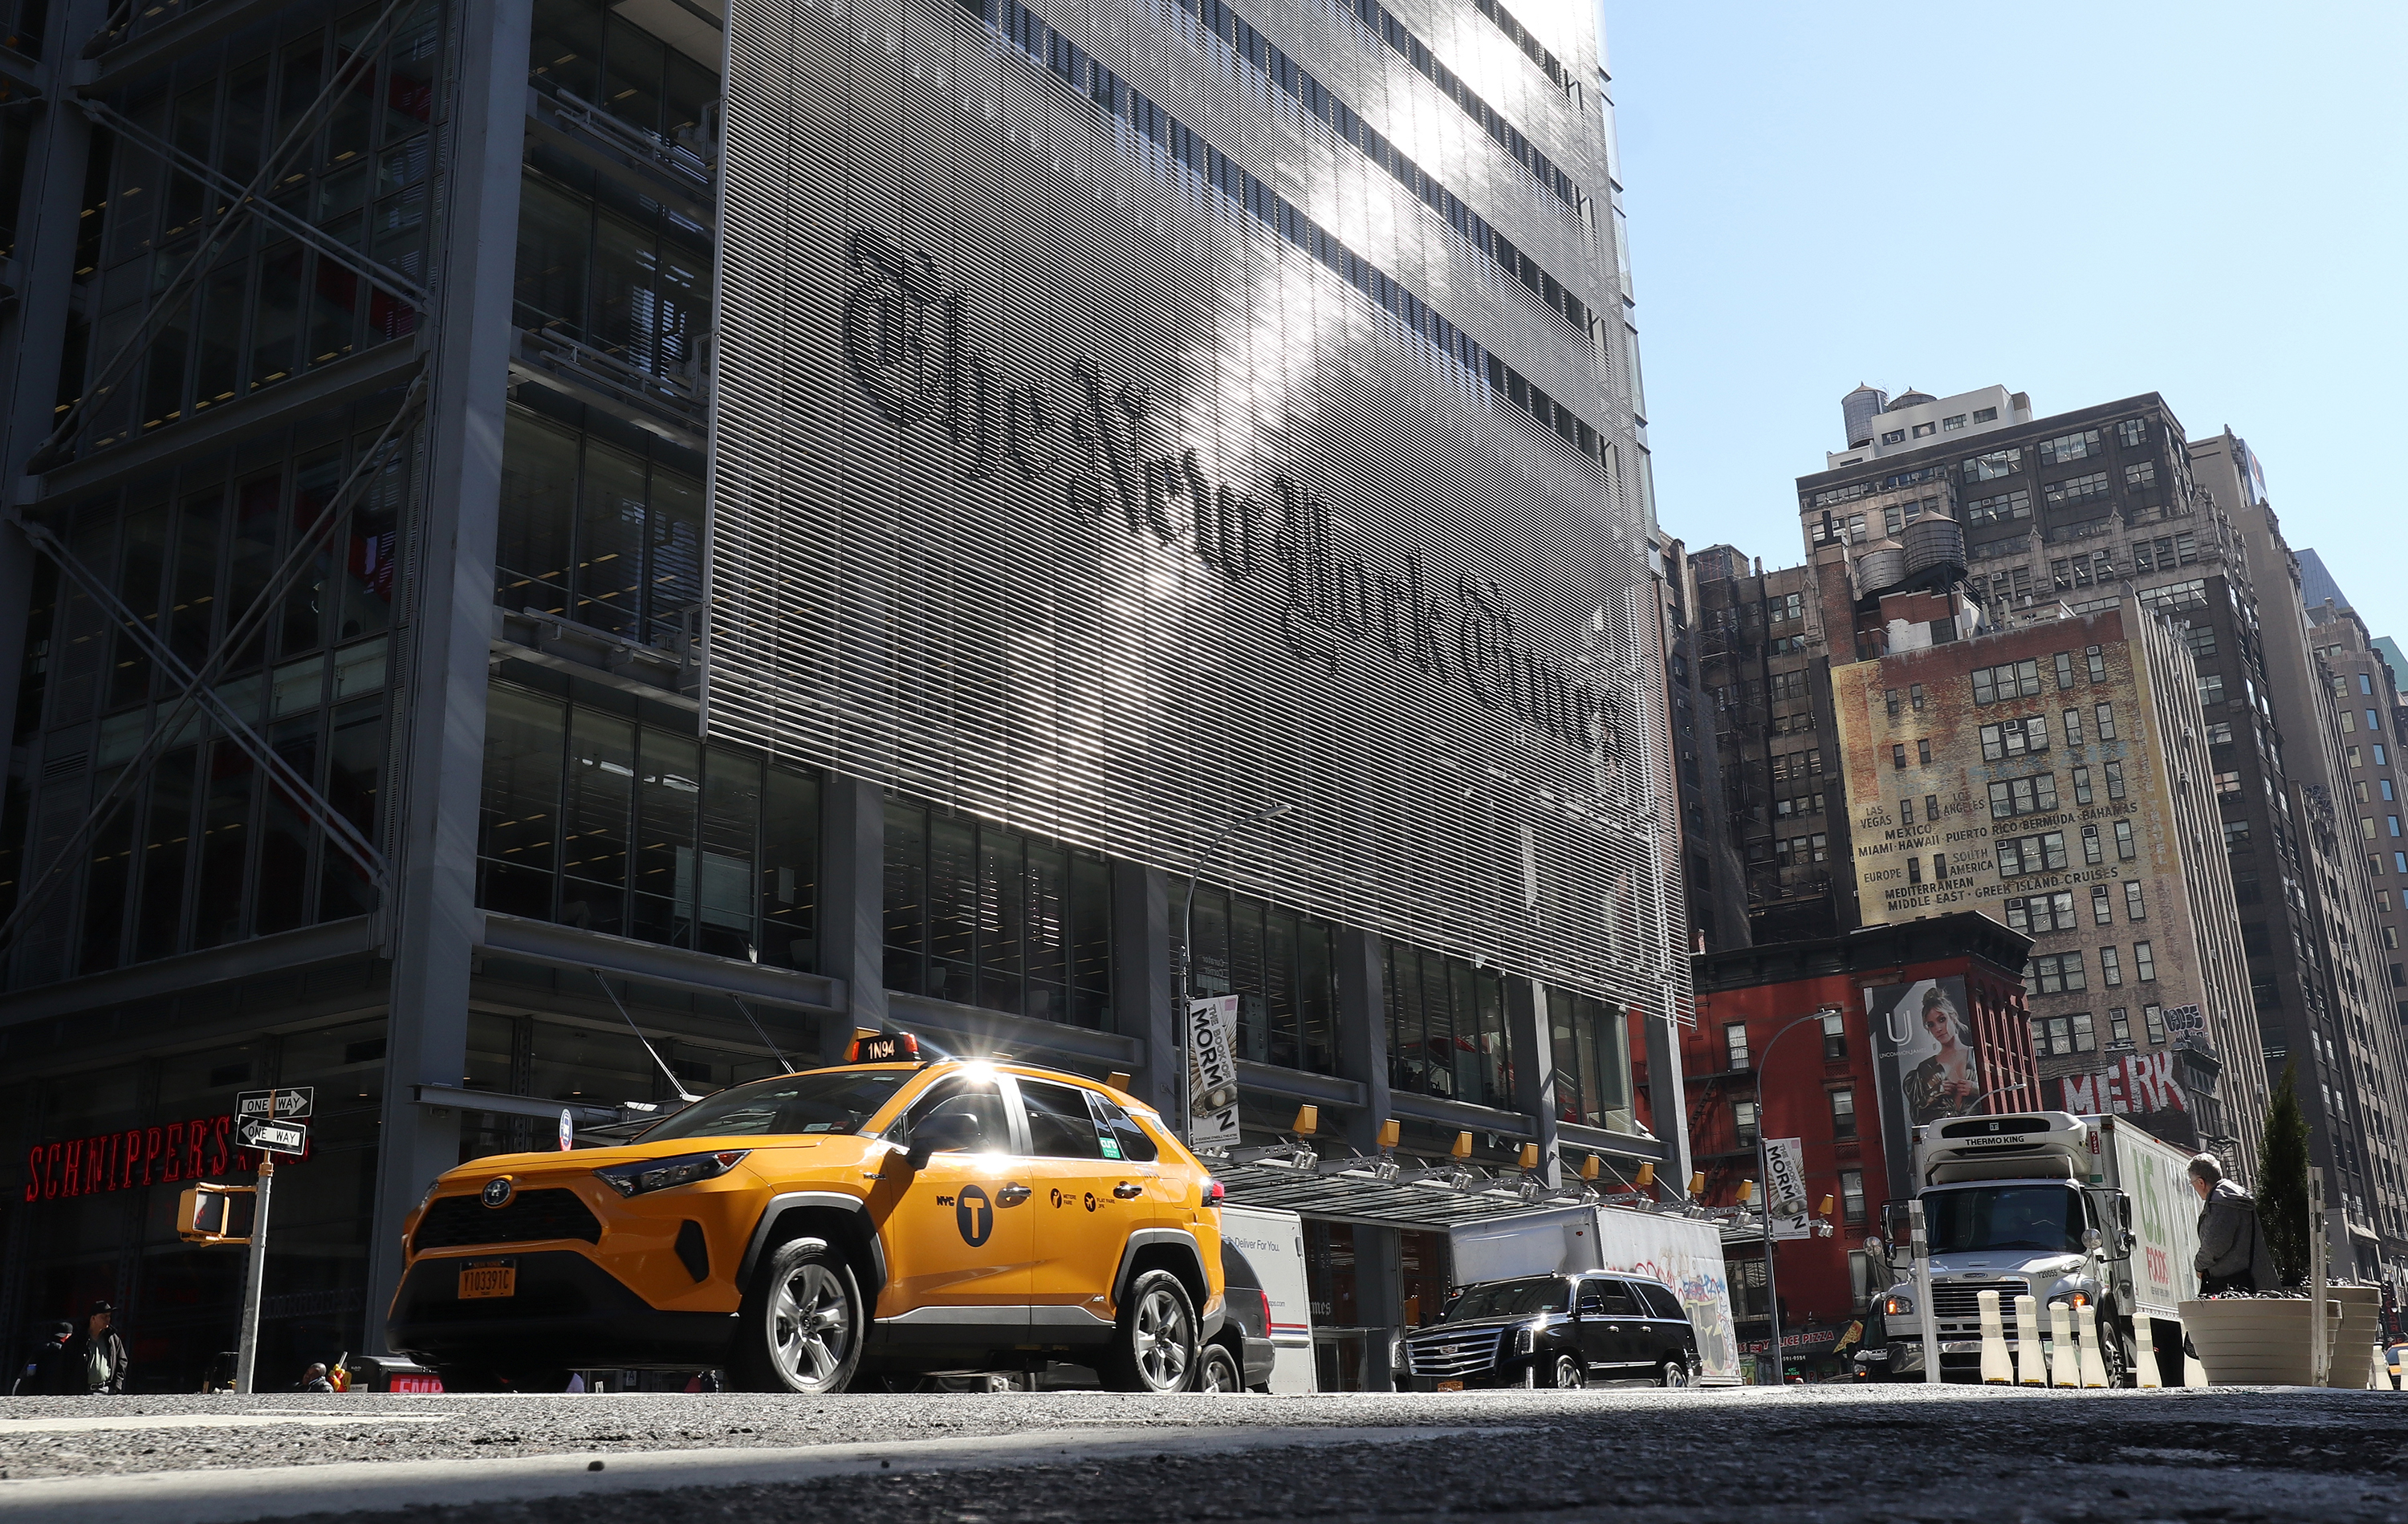 New York Times says controversial Tom Cotton op-ed did not meet its standards